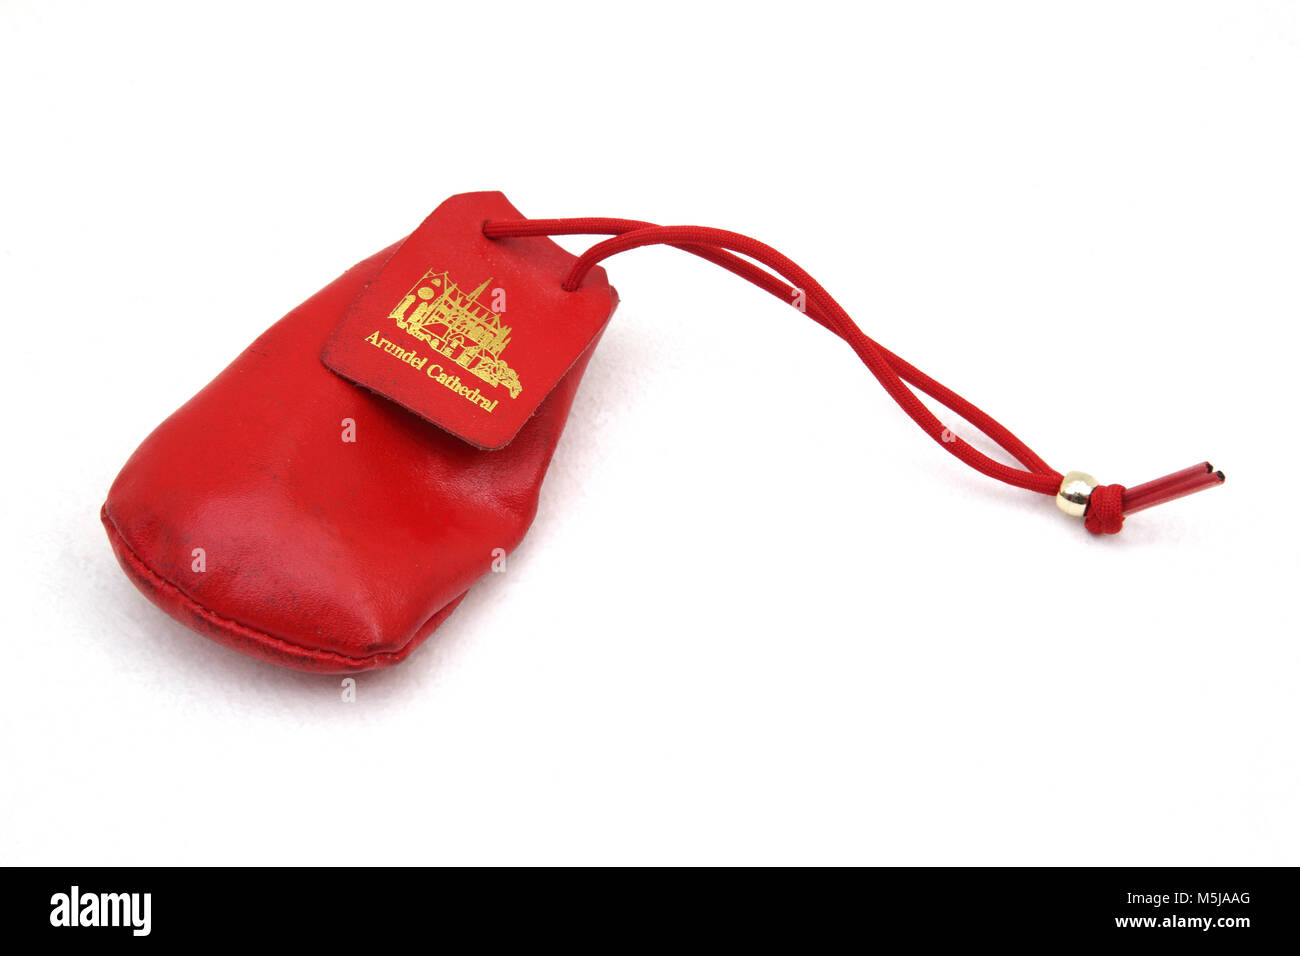 Red Leather Money Pouch Souvenir from Arundel Cathedral - Stock Image